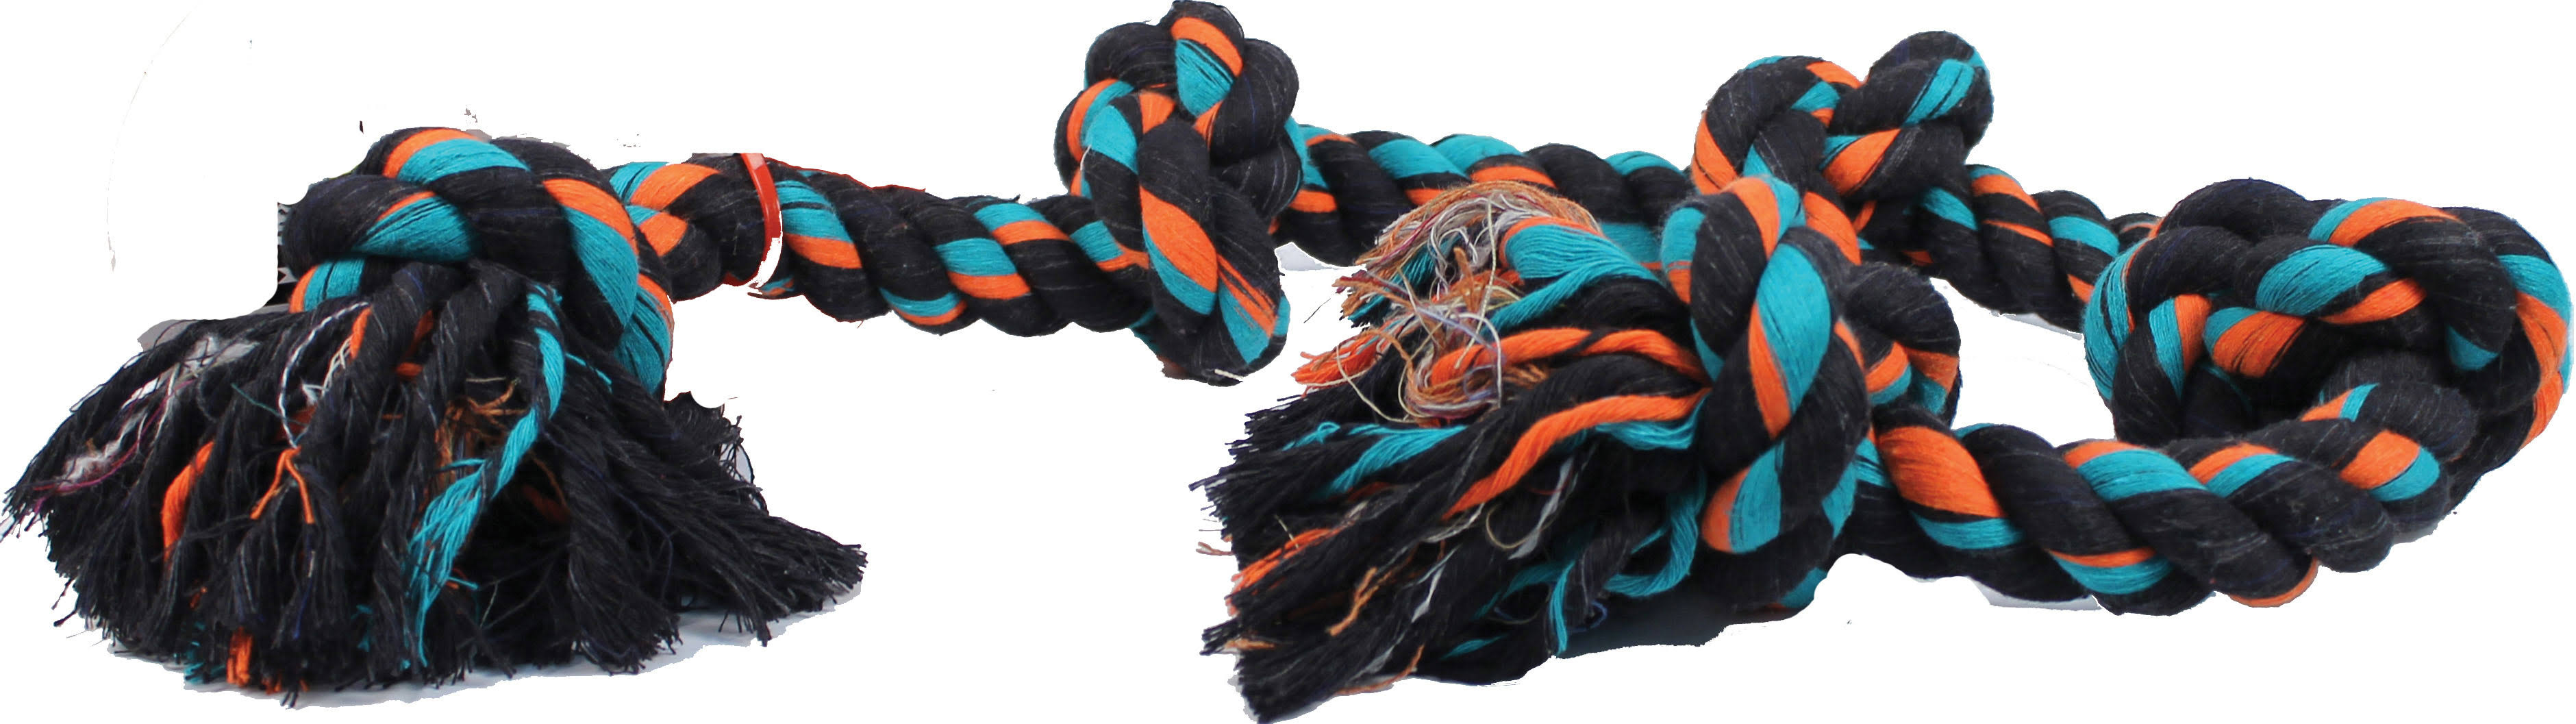 Mammoth Flossy Chews 5-Knot Tug Rope Toy - XL